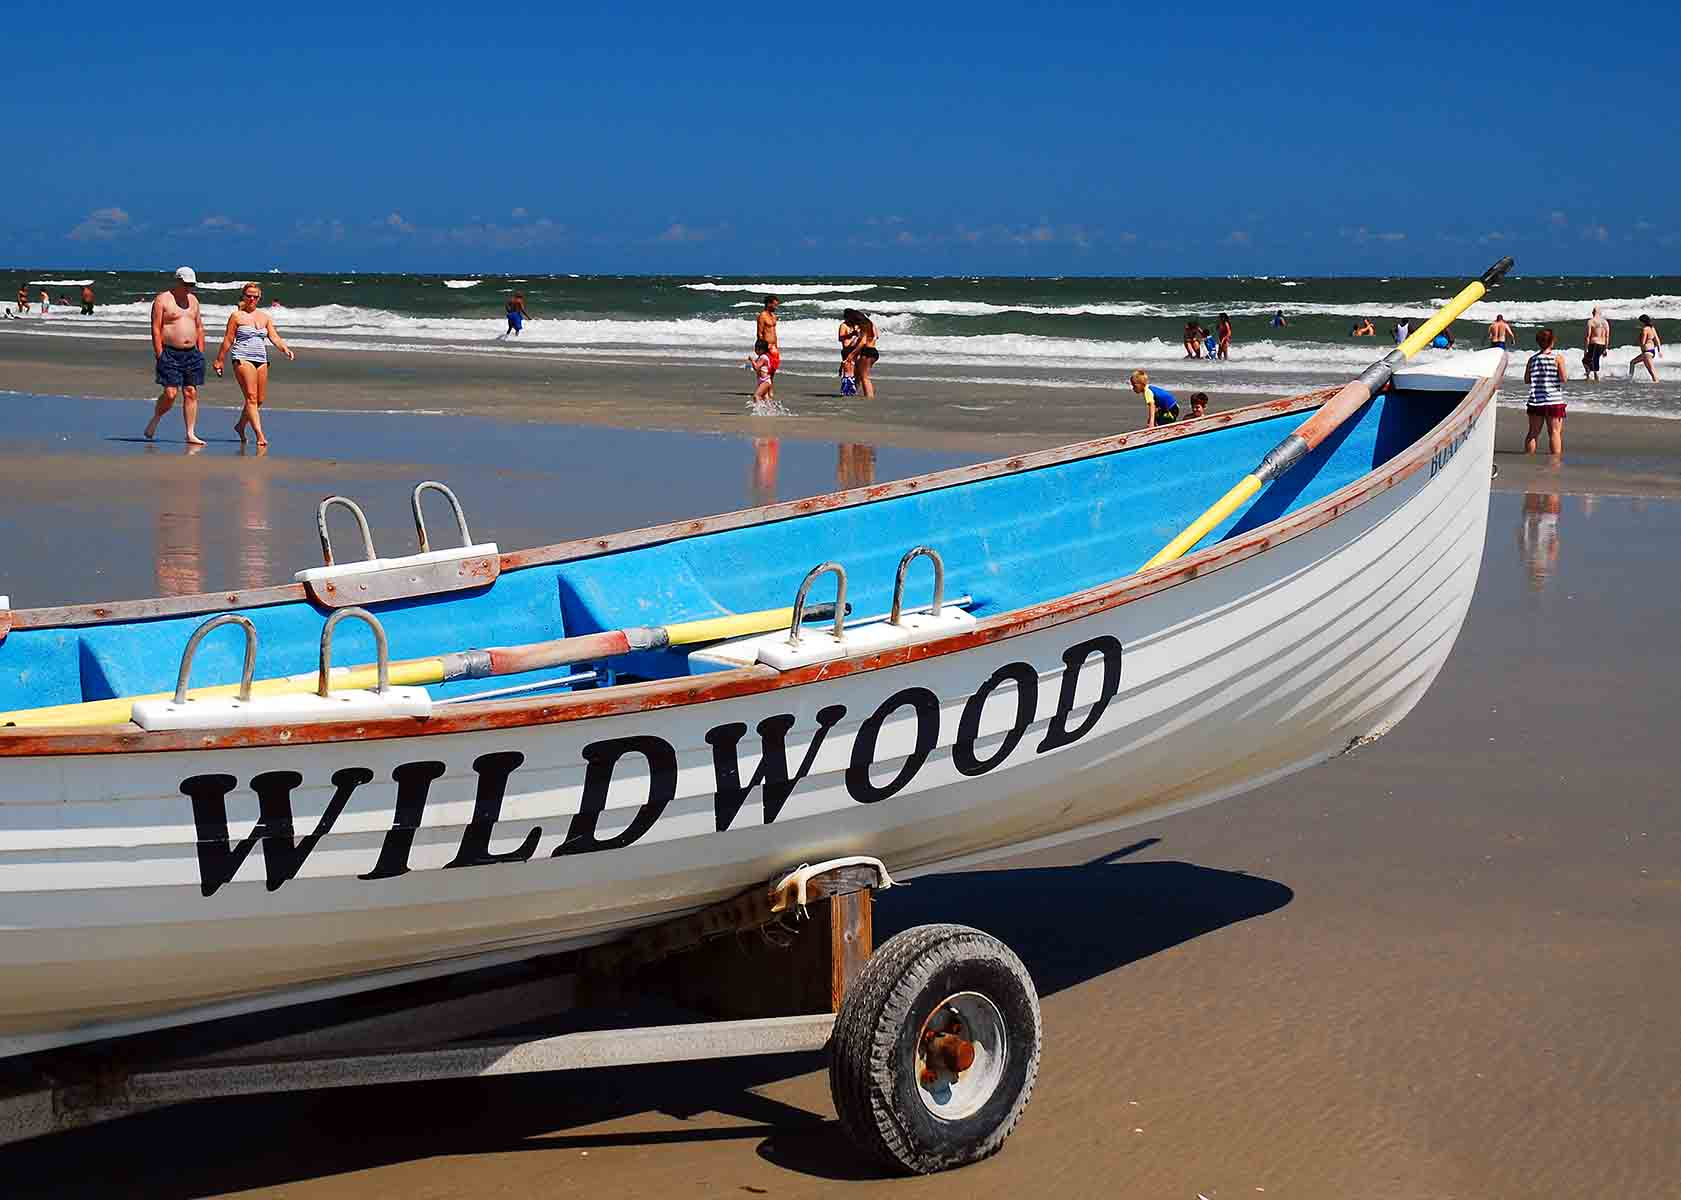 Wildwood boat on the beach